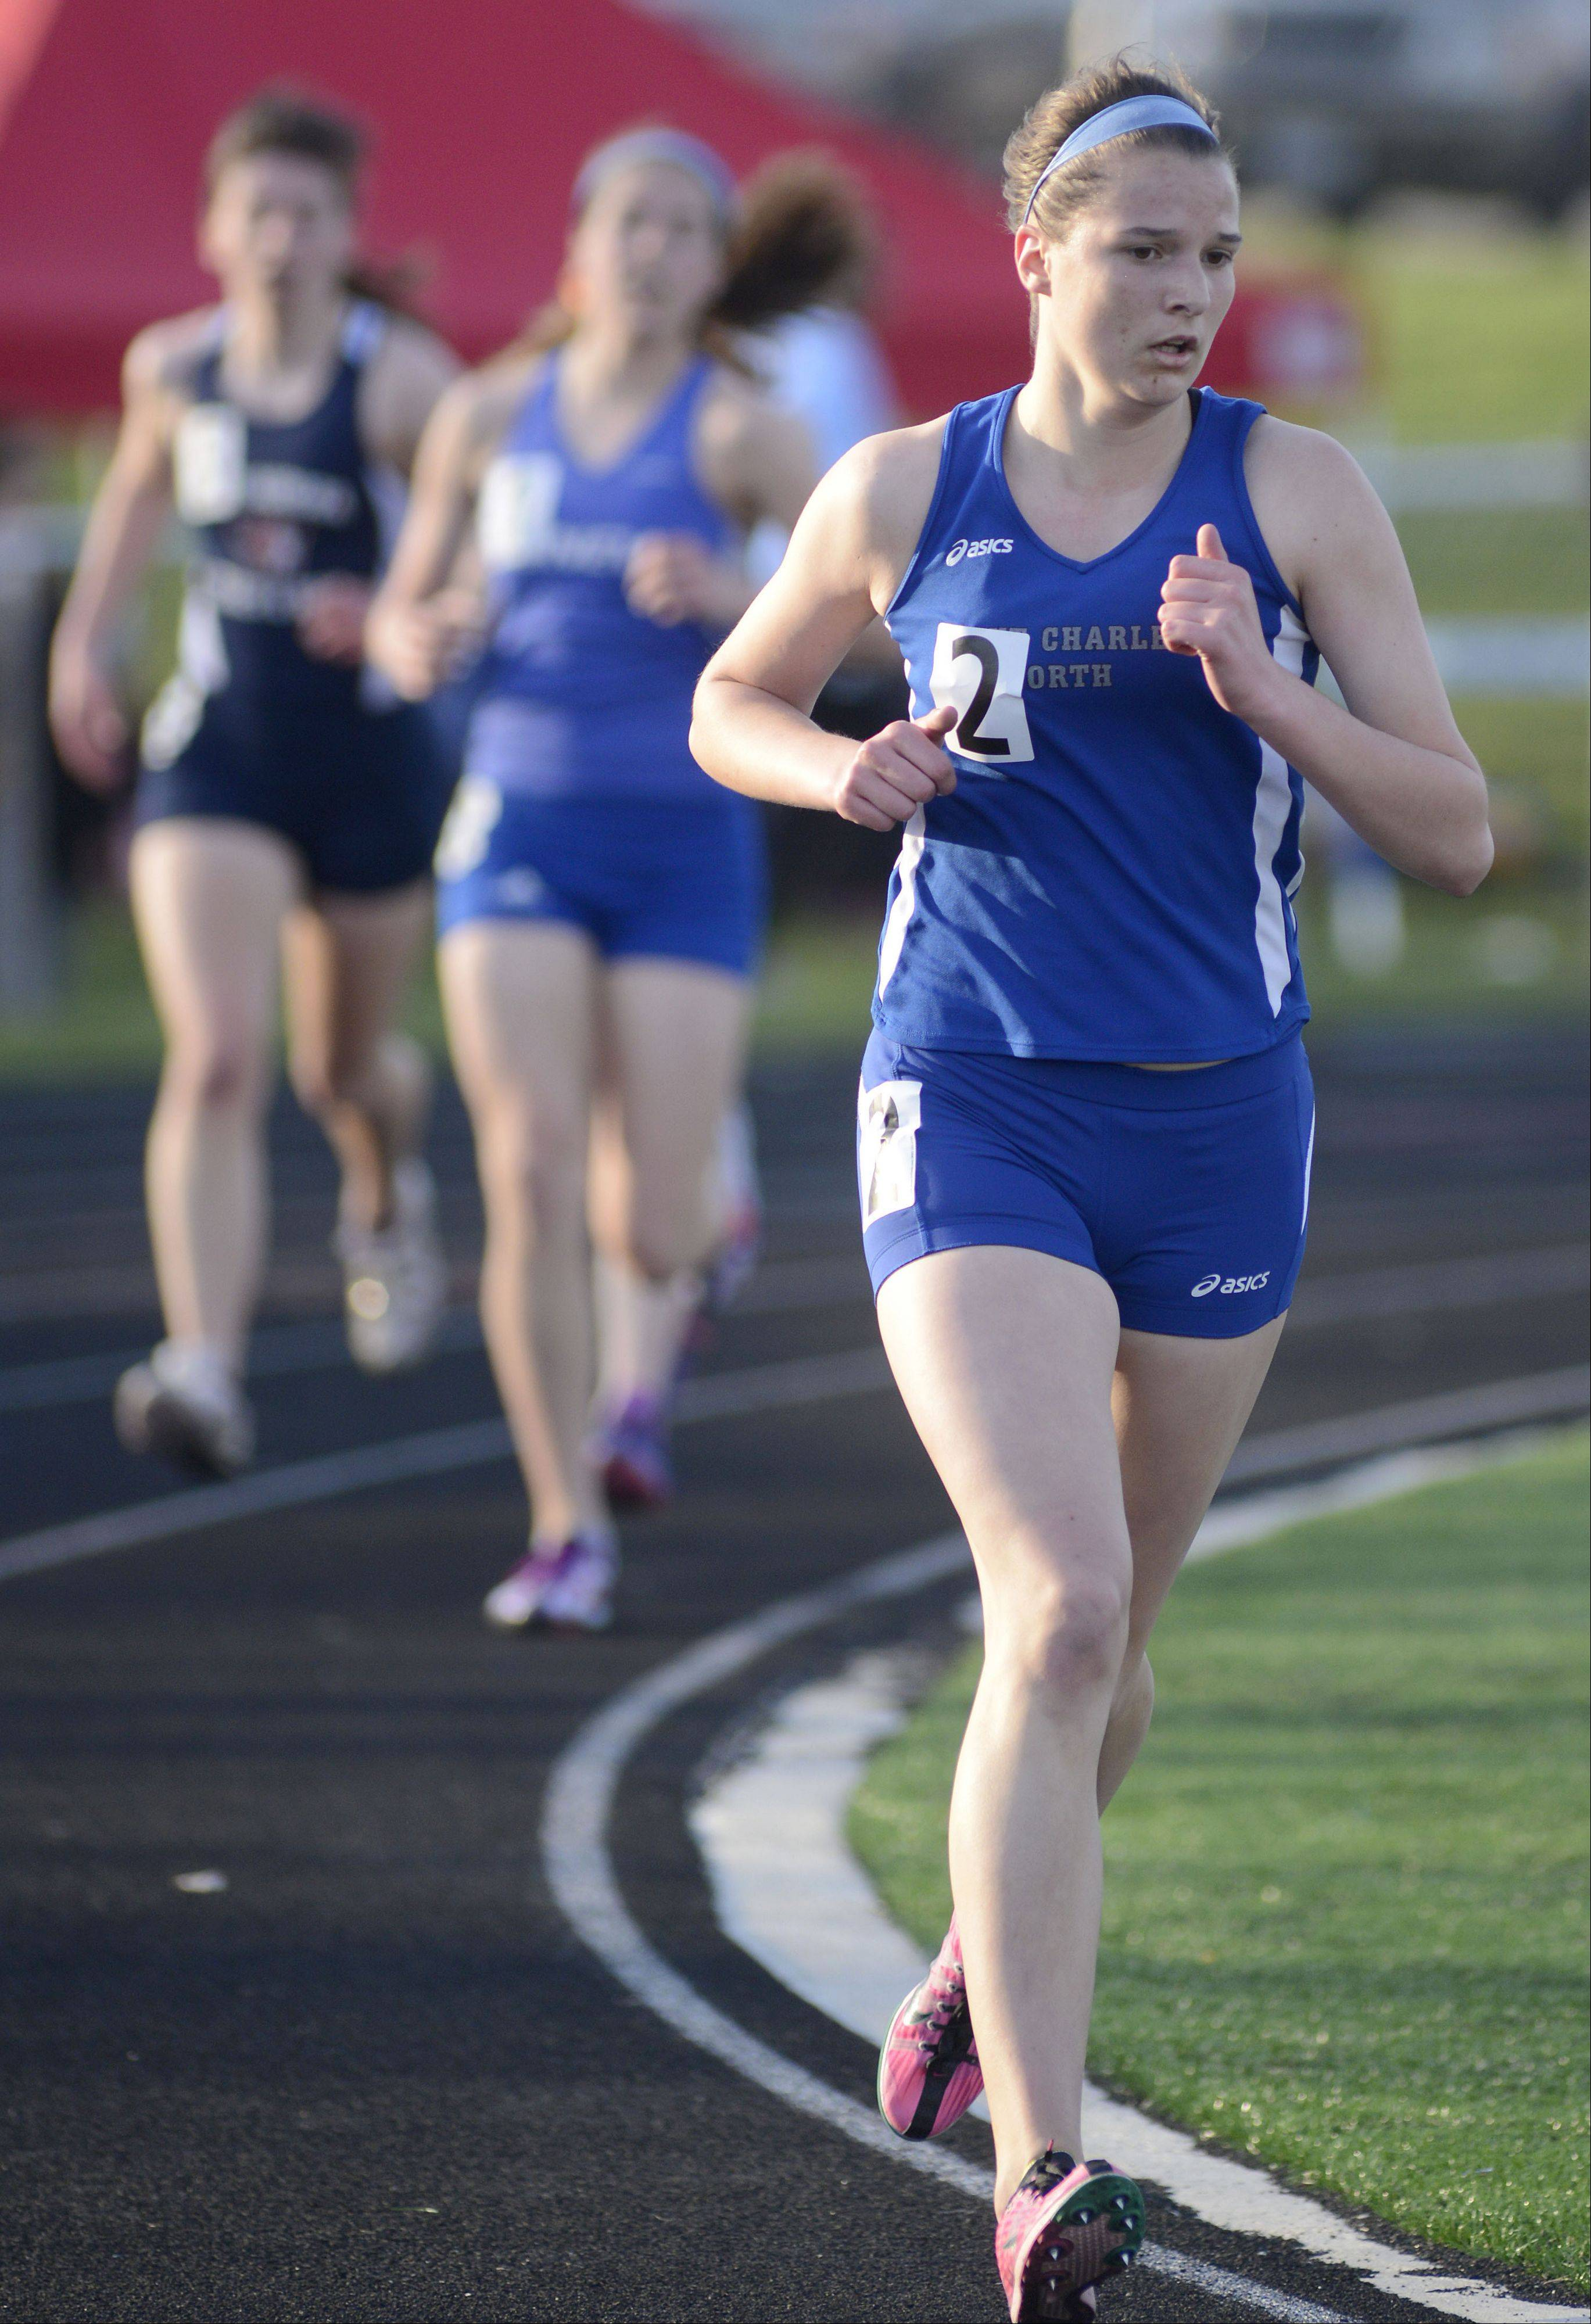 St. Charles North's Ashley England leads the 3200 meter run and takes first place at the Kane County Invitational track in Geneva meet on Friday, April 26.